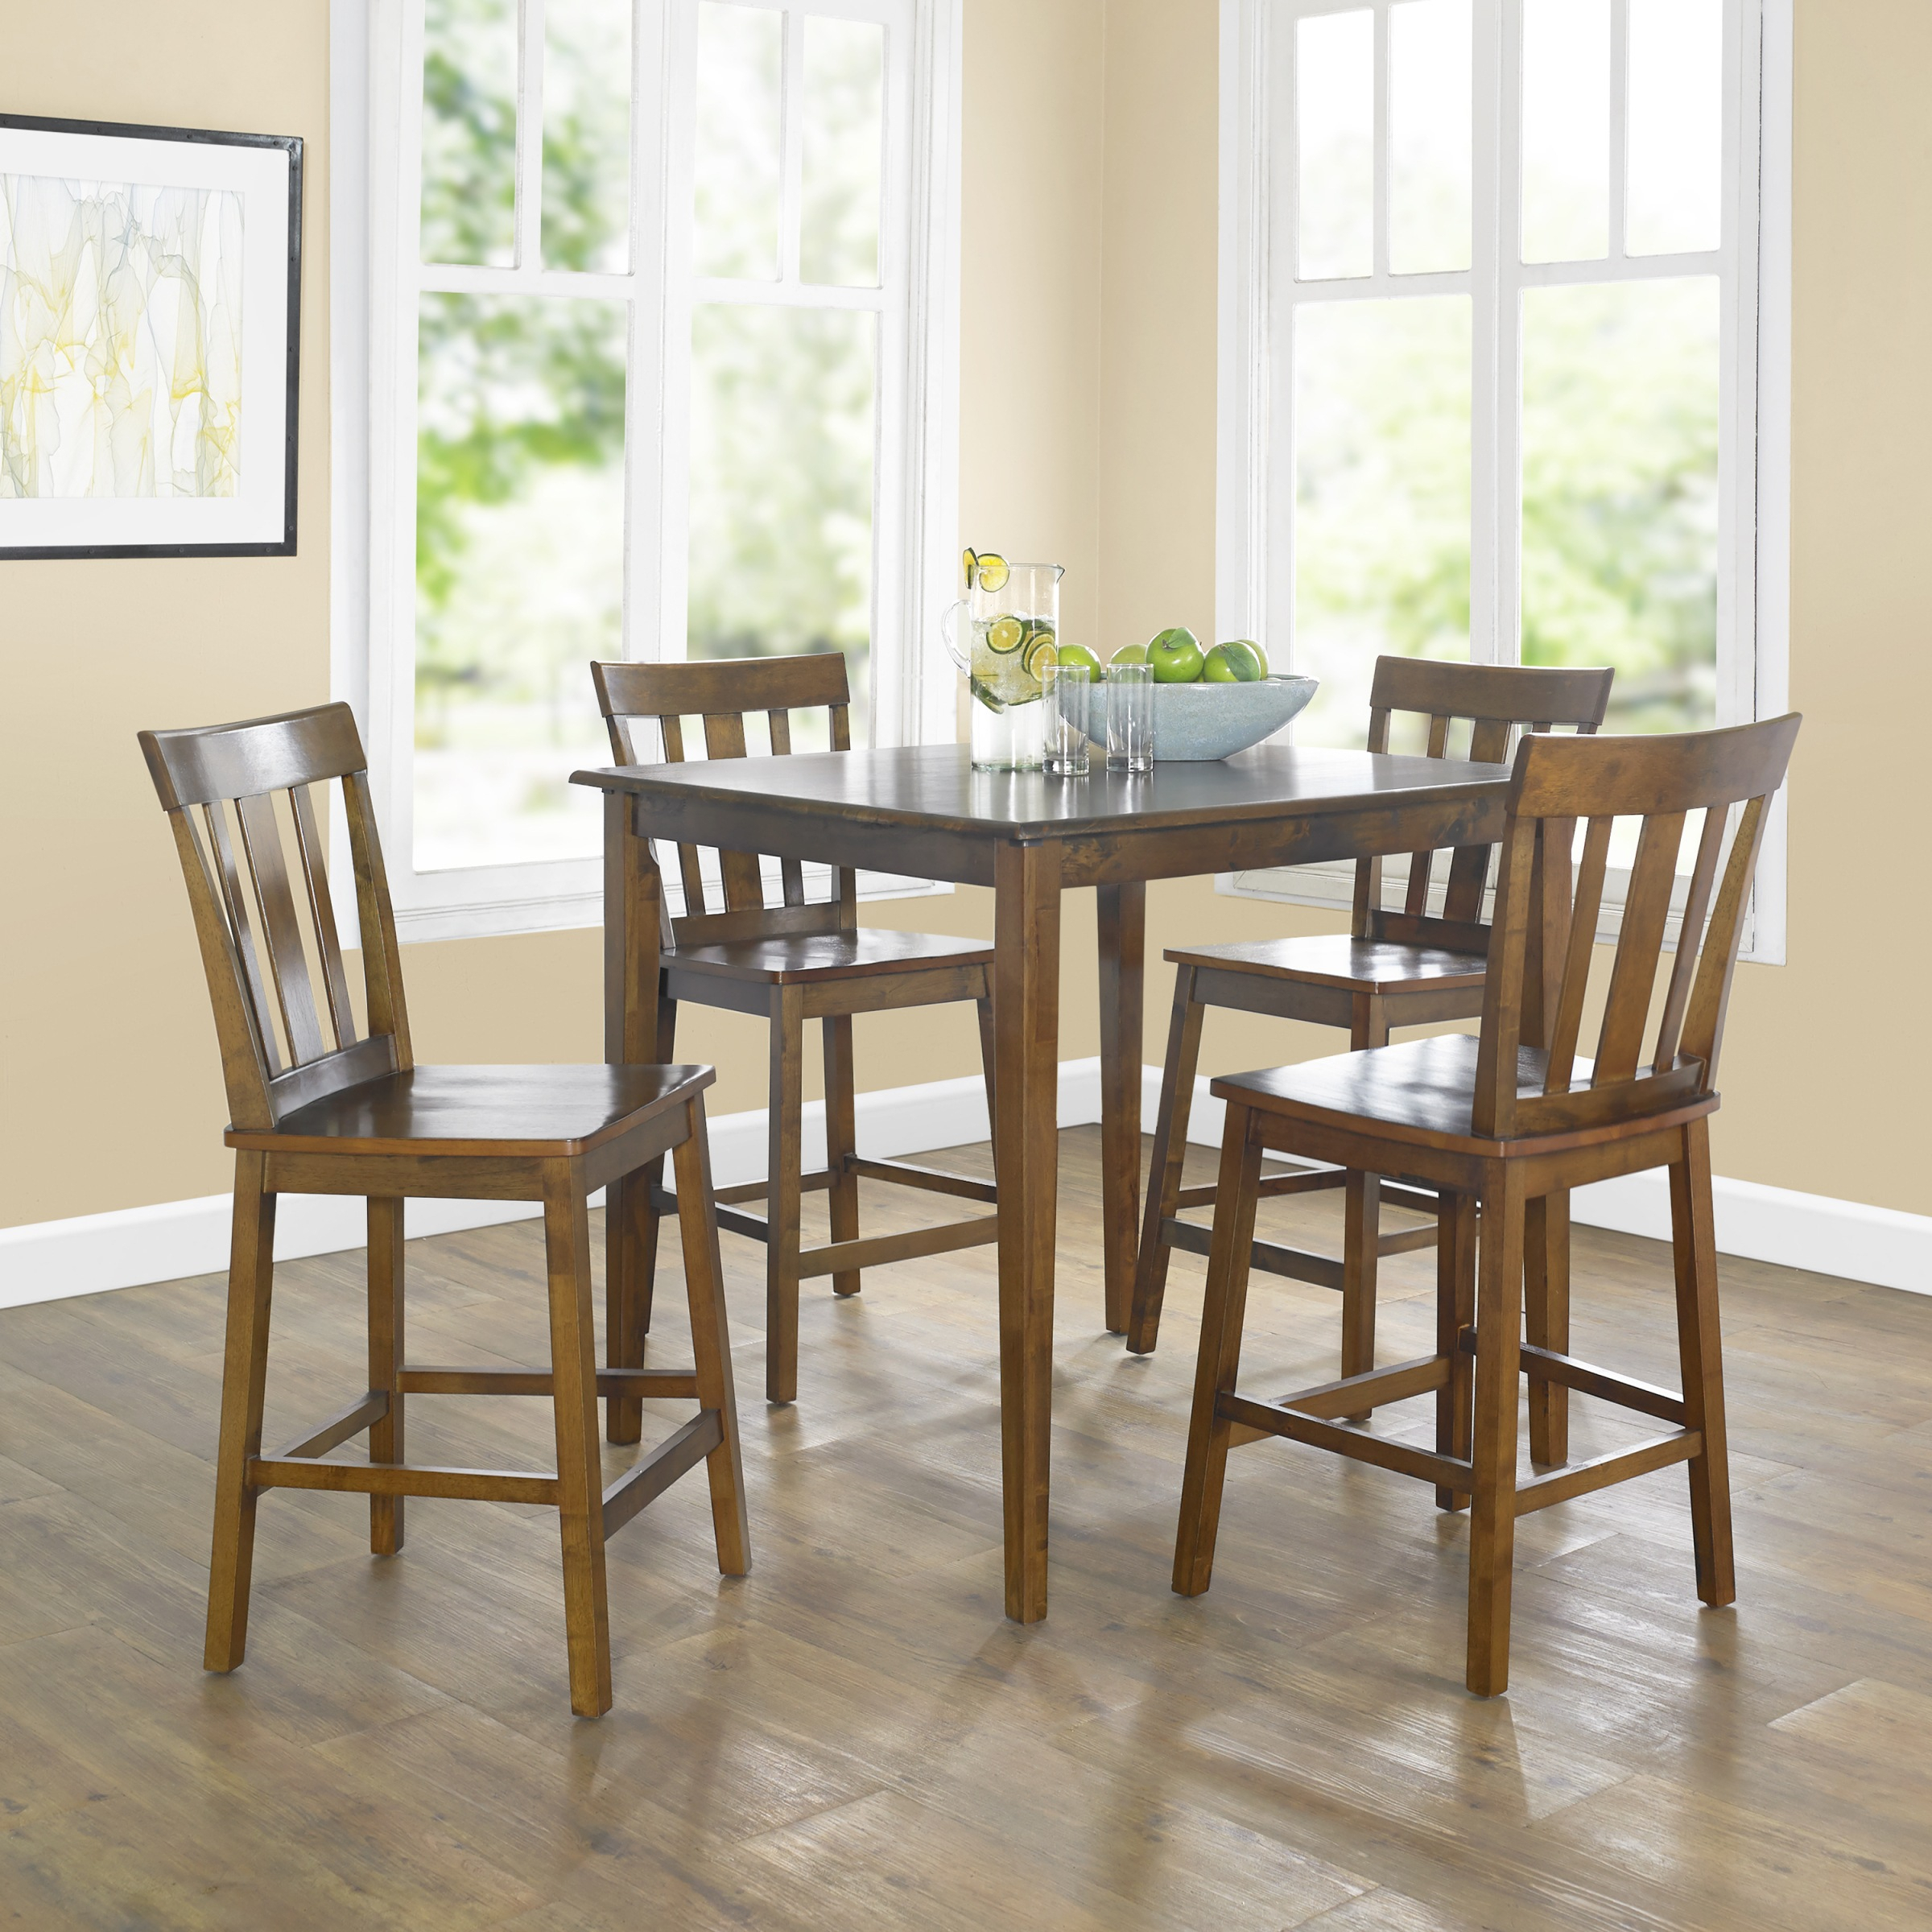 Famous Goodman 5 Piece Solid Wood Dining Sets (Set Of 5) With Regard To Mainstays 5 Piece Mission Counter Height Dining Set – Walmart (View 4 of 20)